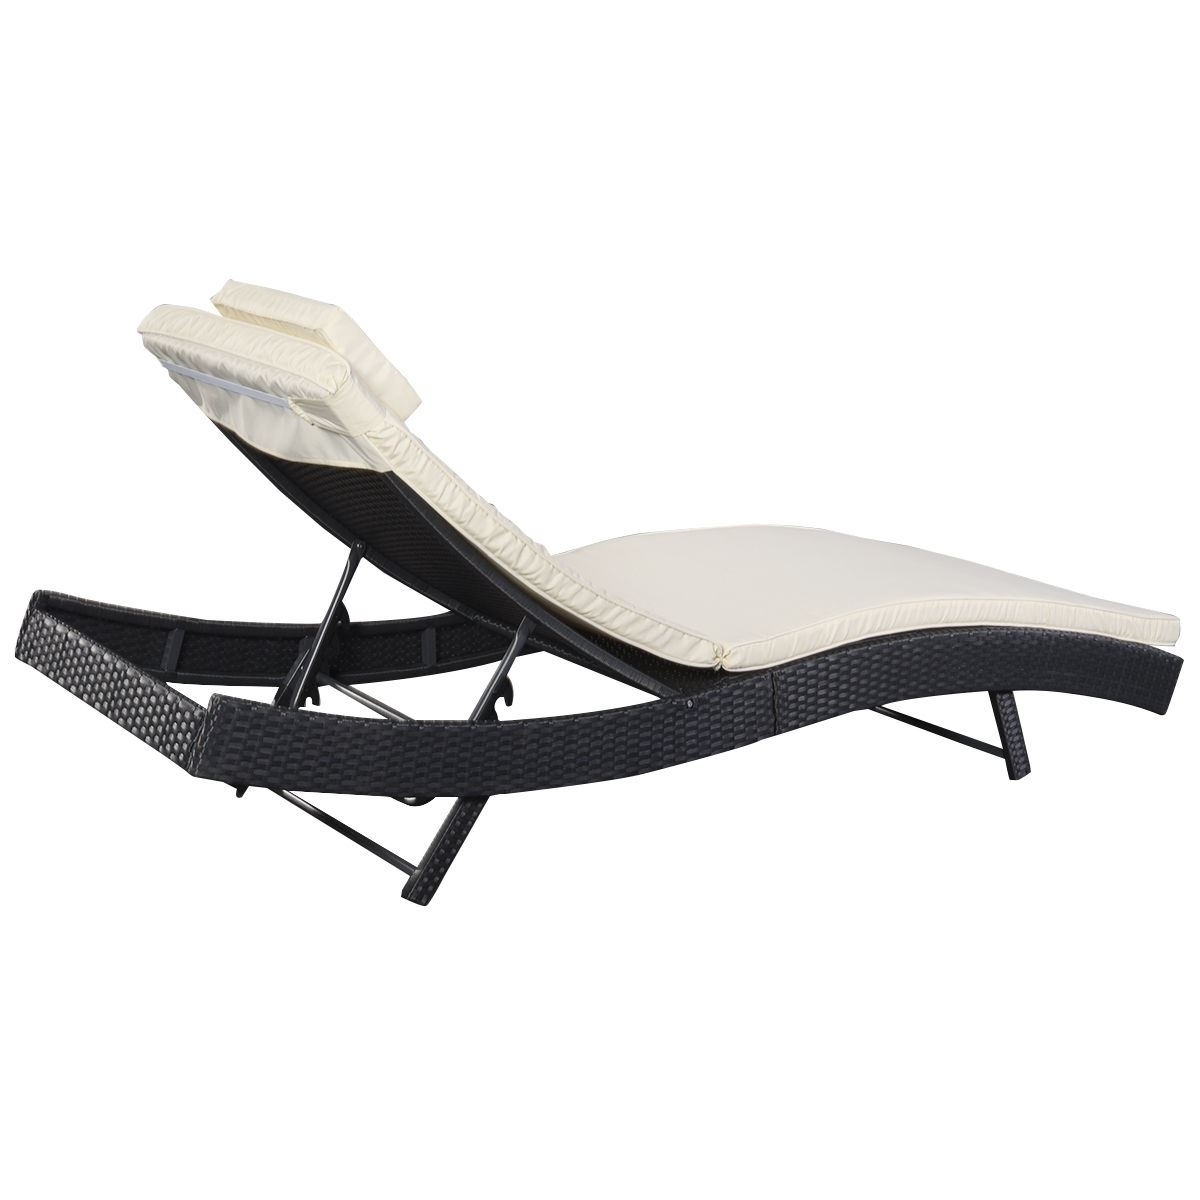 Well Known Vinyl Chaise Lounge Chairs Throughout Outdoor : Target Lounge Chairs Vinyl Strap Chaise Lounge Outdoor (View 15 of 15)